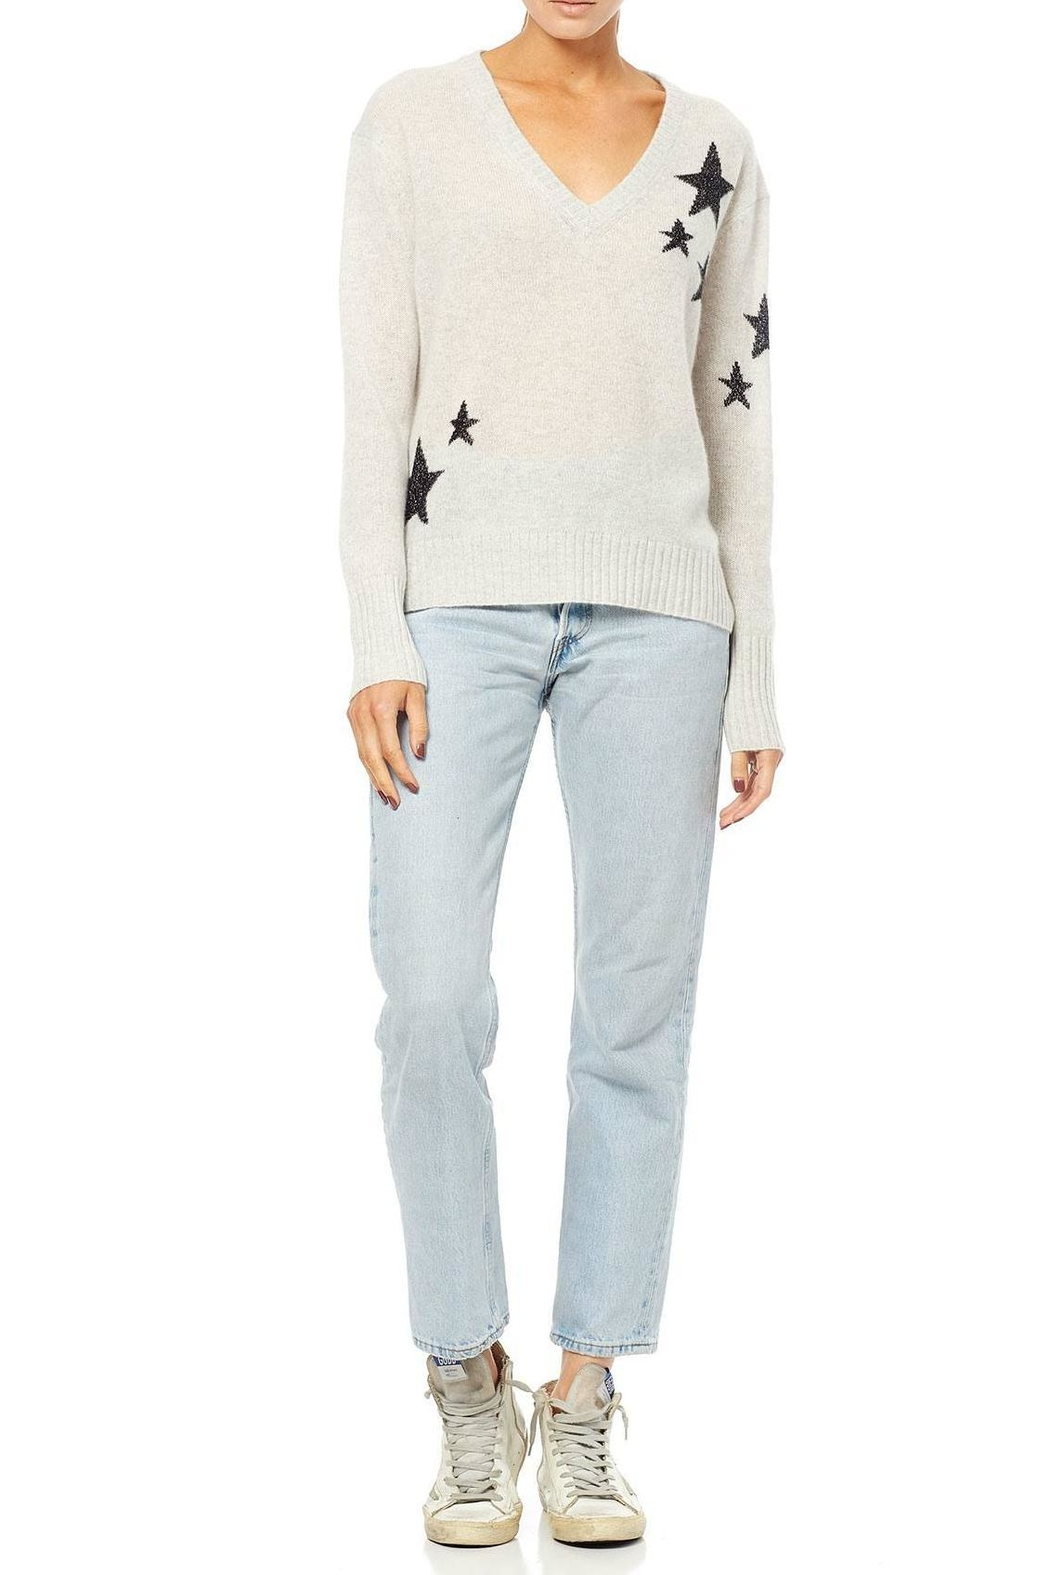 360 Cashmere Cashmere Star Sweater - Side Cropped Image